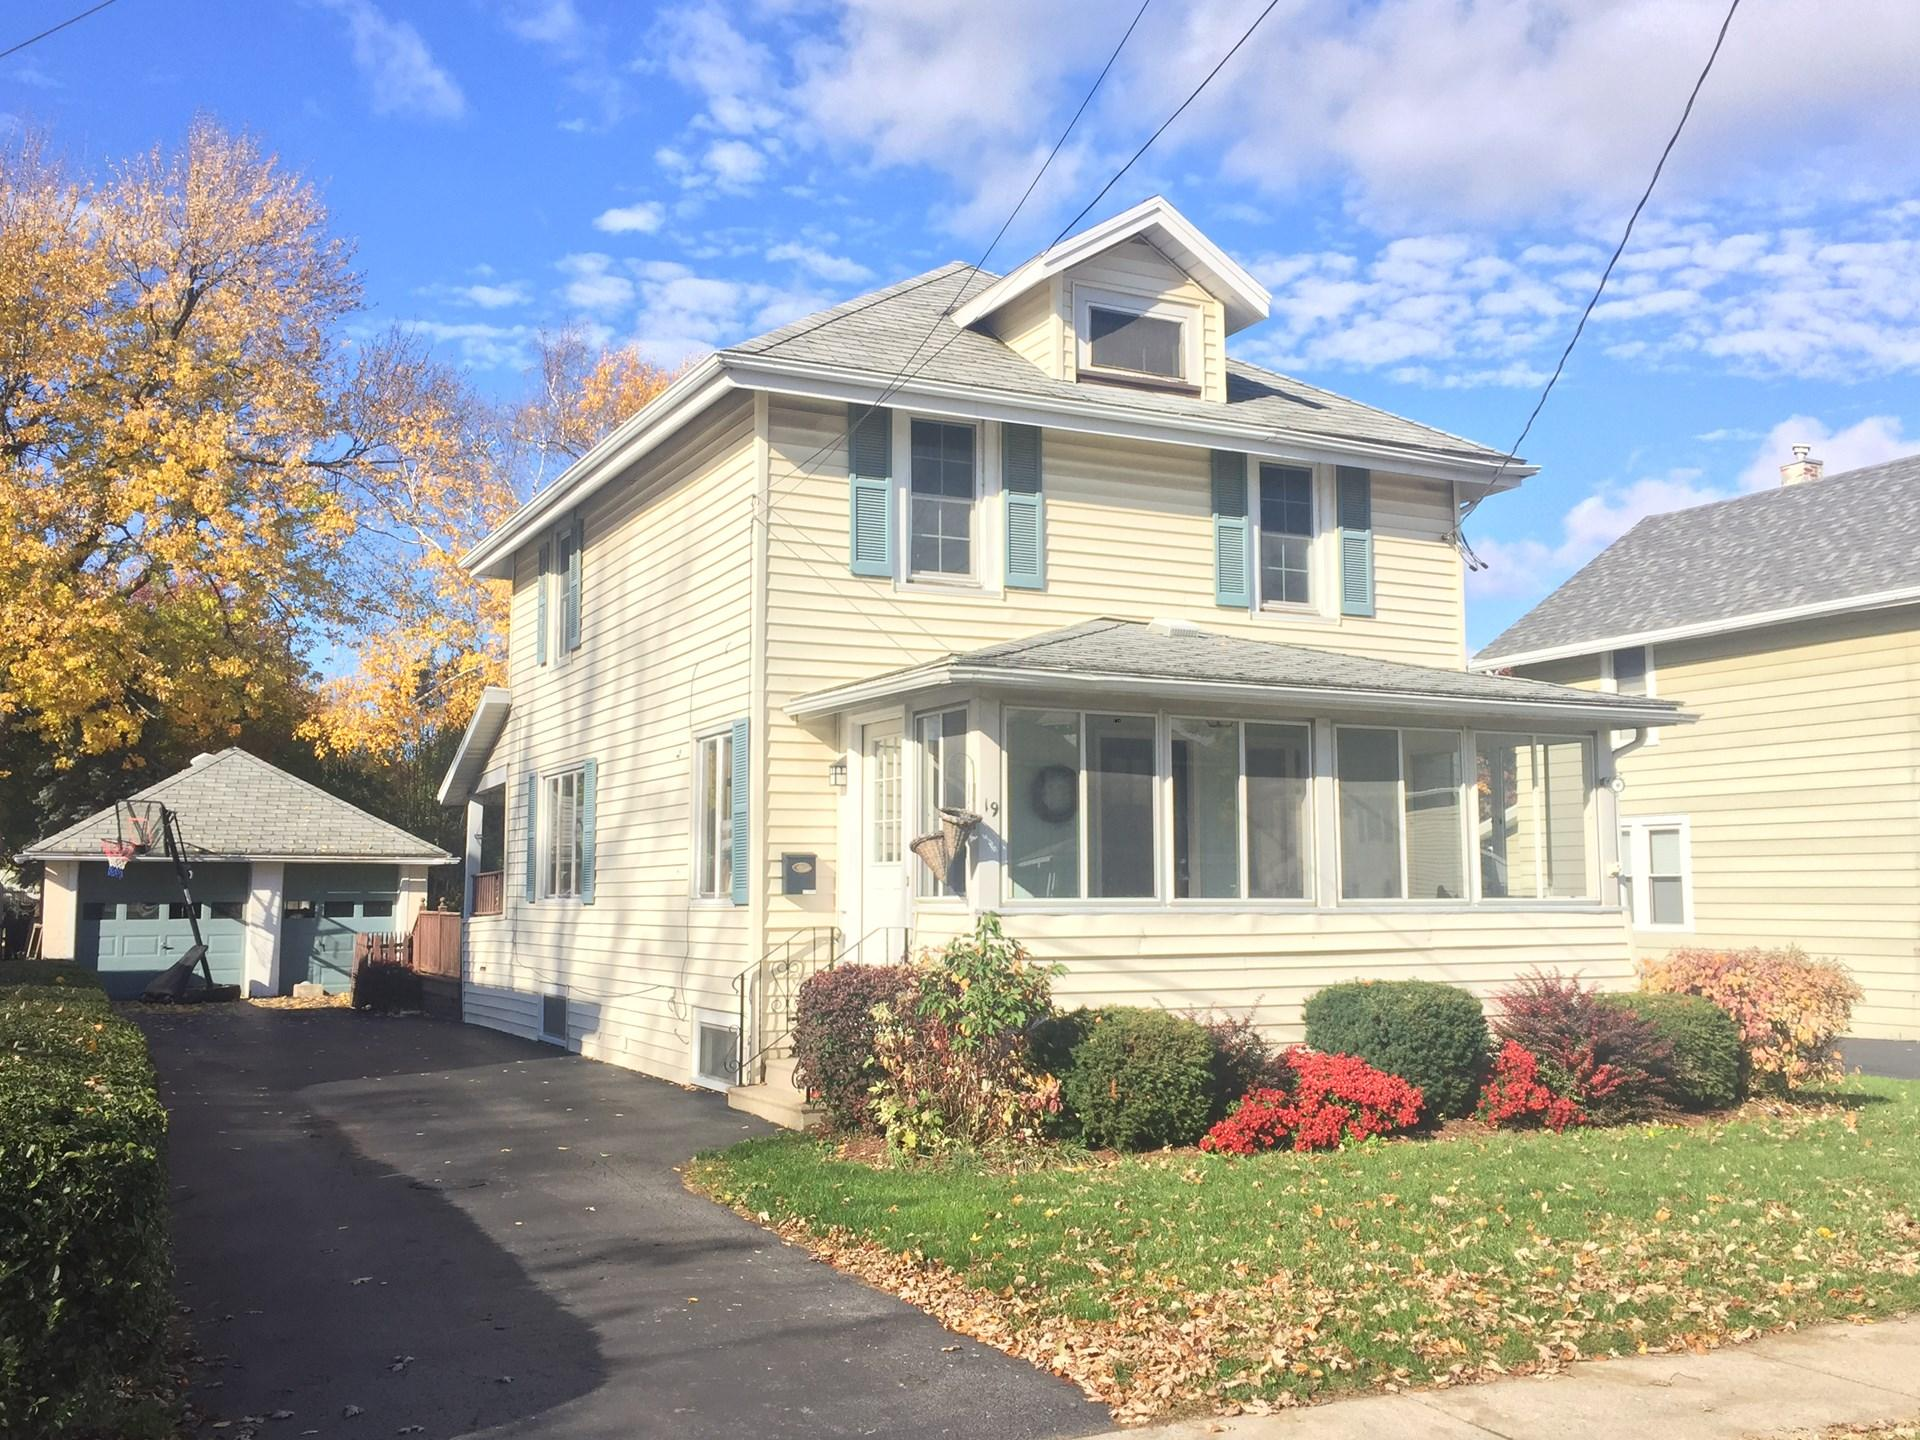 New york genesee county oakfield - 19 Cary Ave